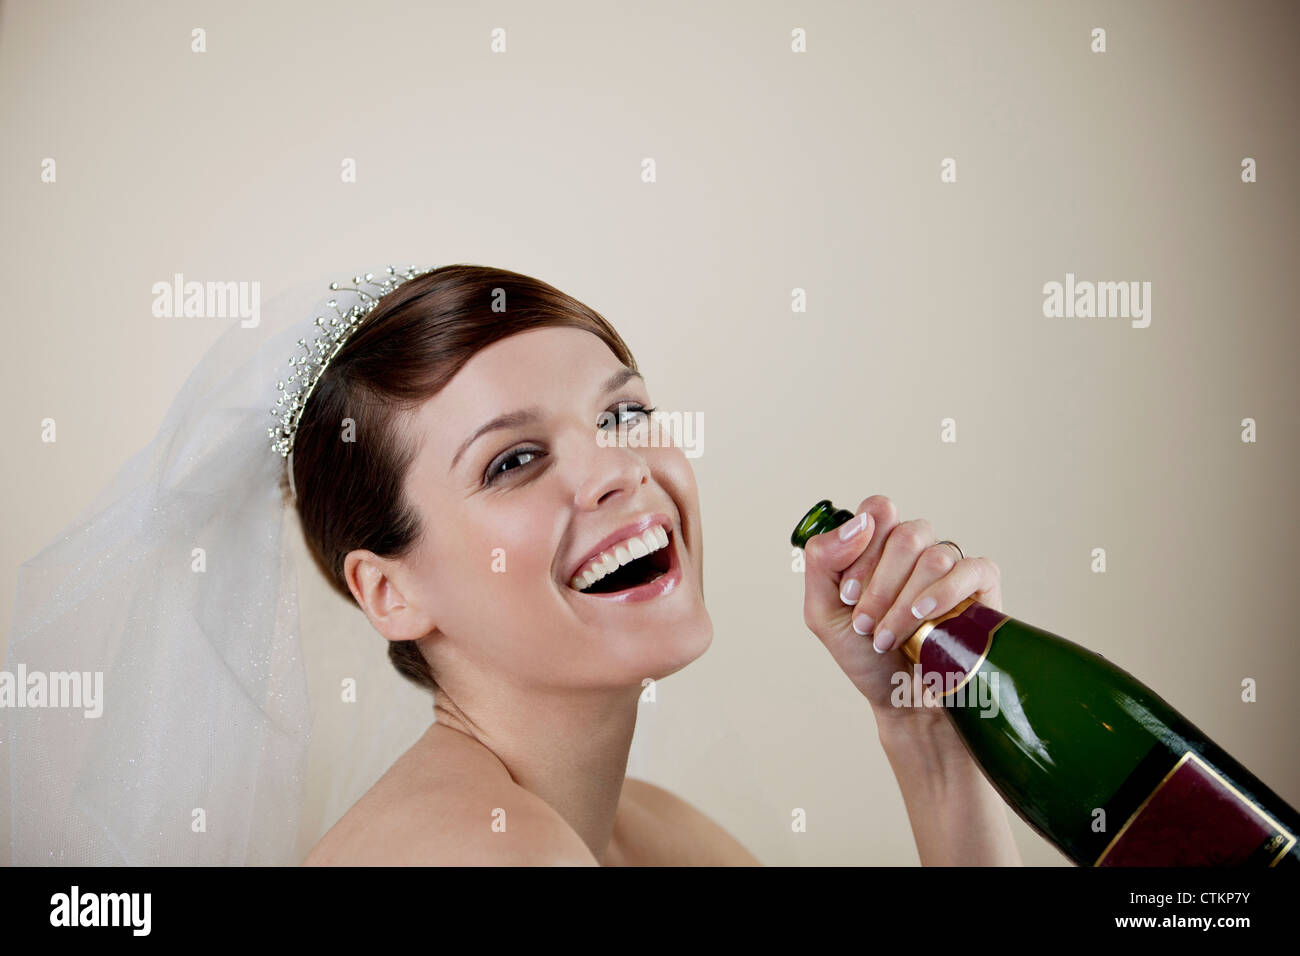 A young bride holding a bottle of champagne Stock Photo